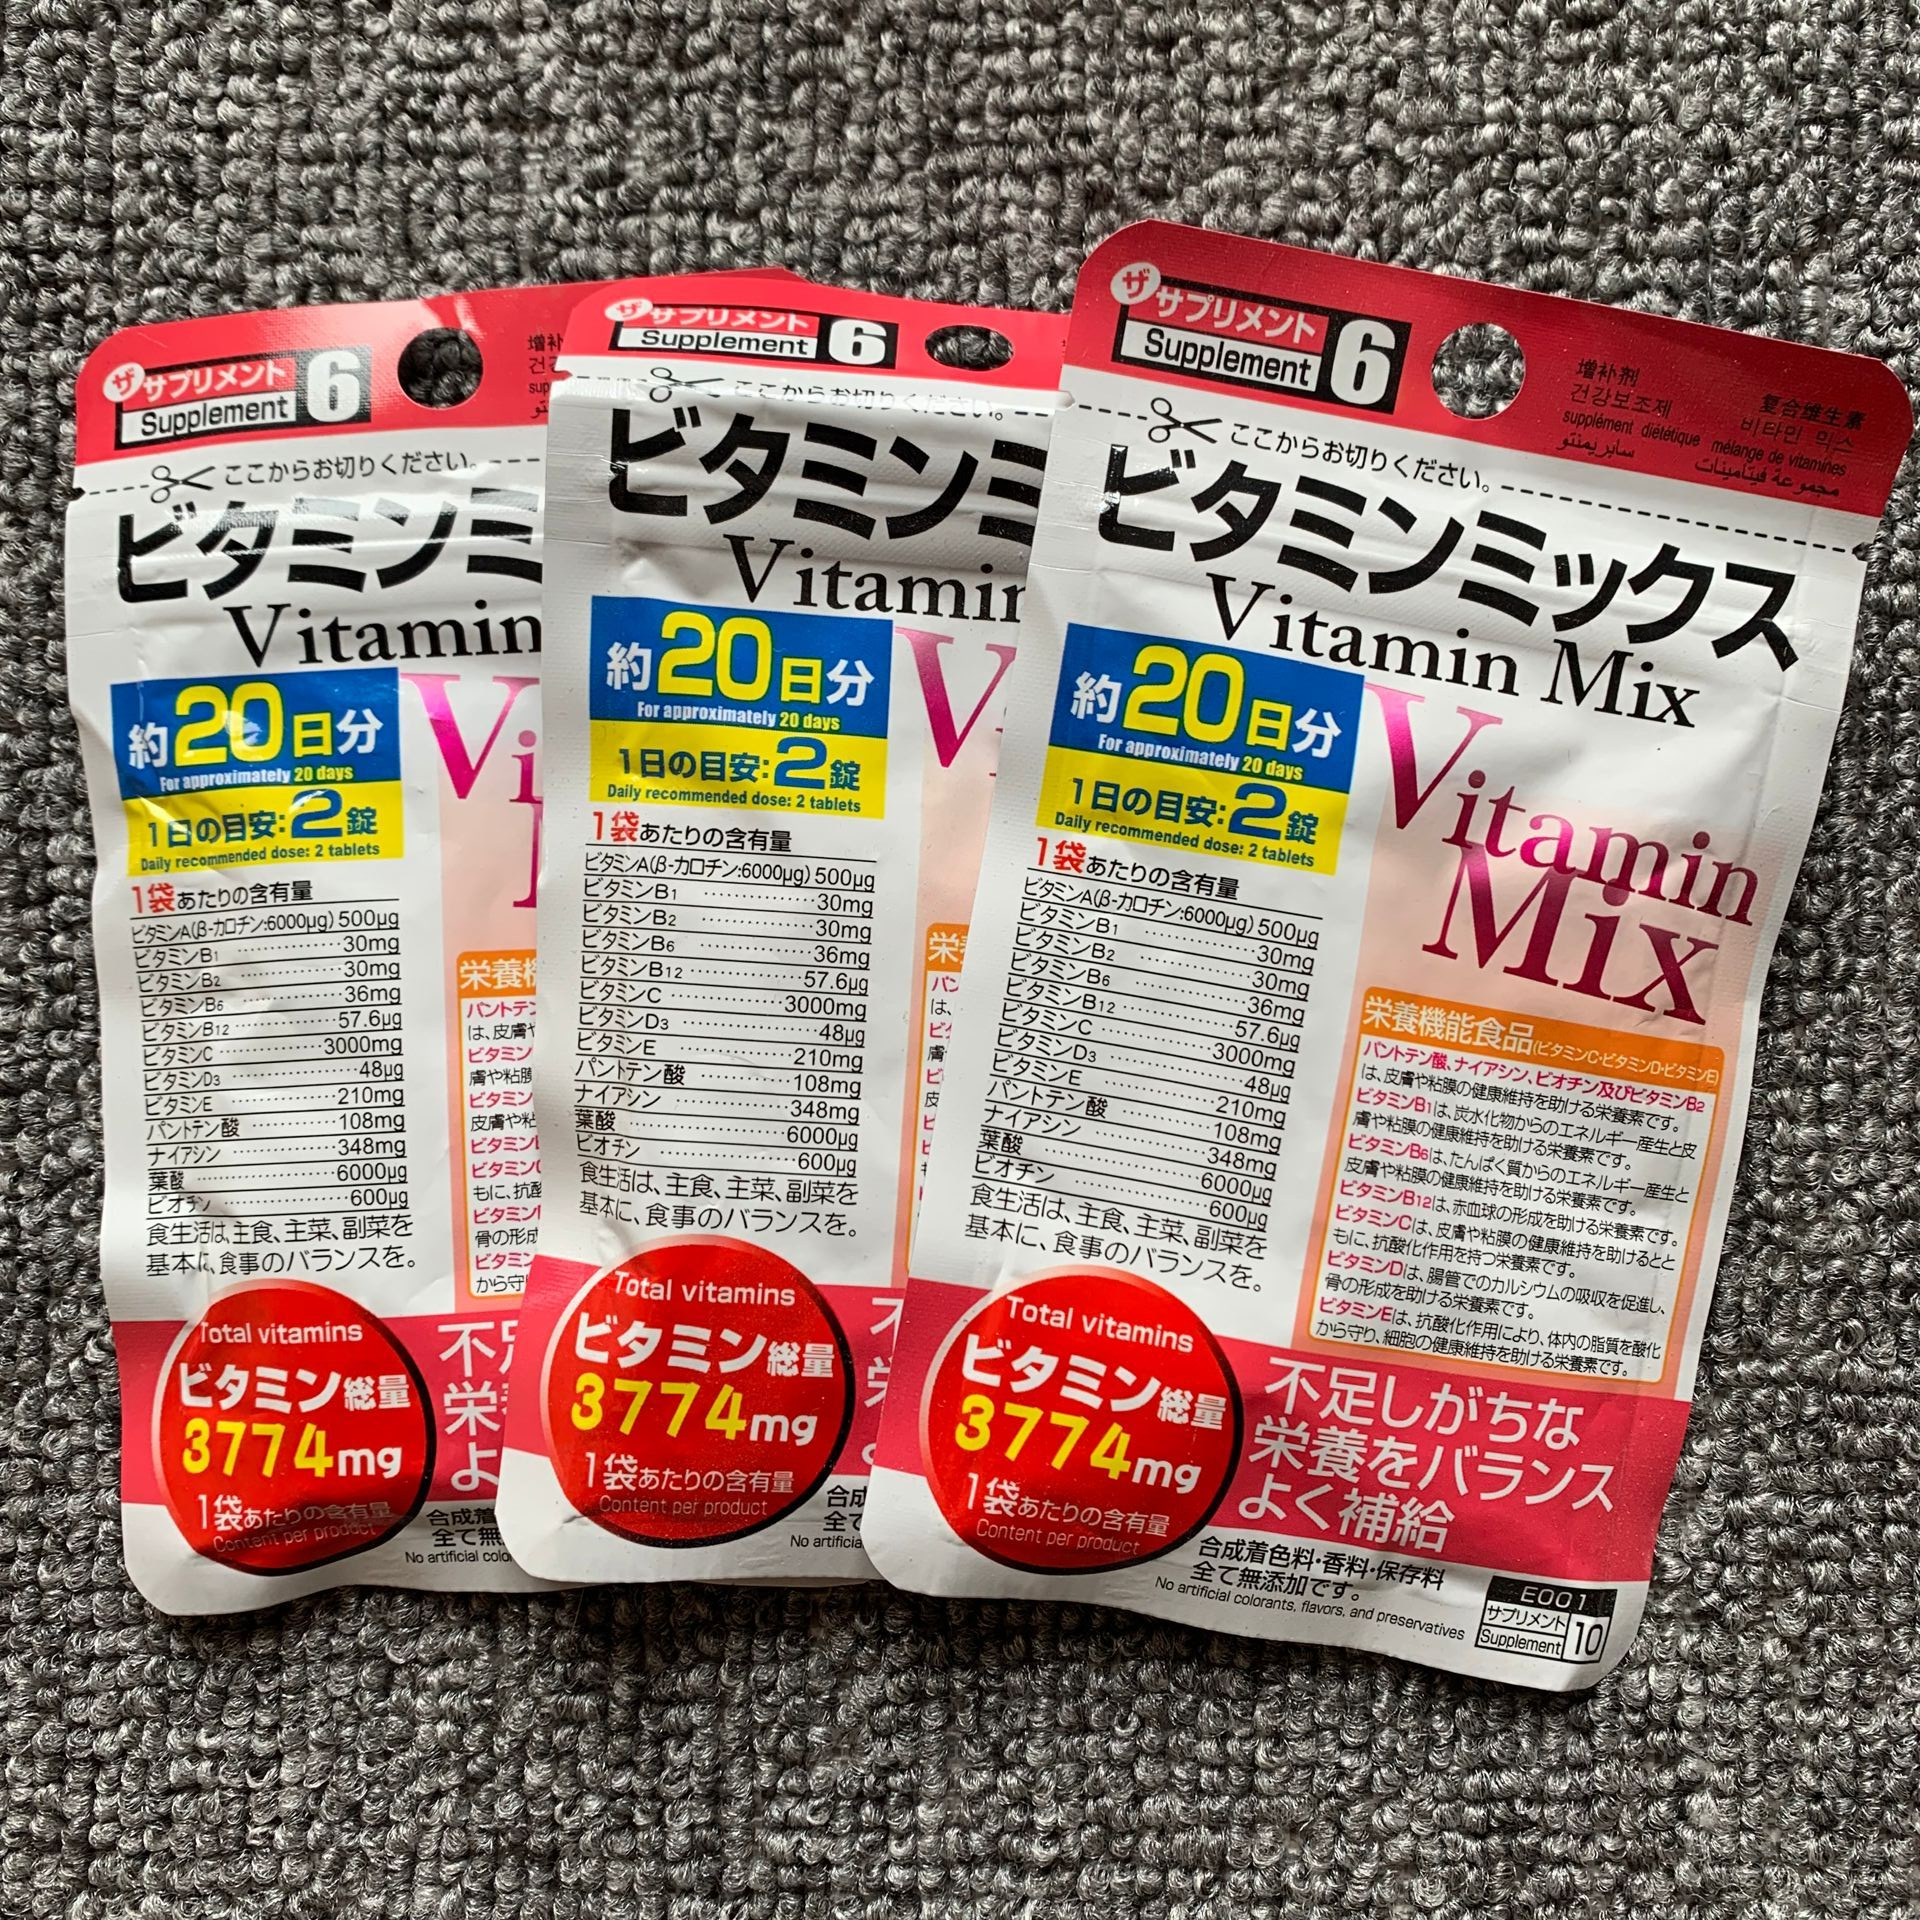 DAISO JAPAN Vitamin Mix Health Supplement 20days 3packs